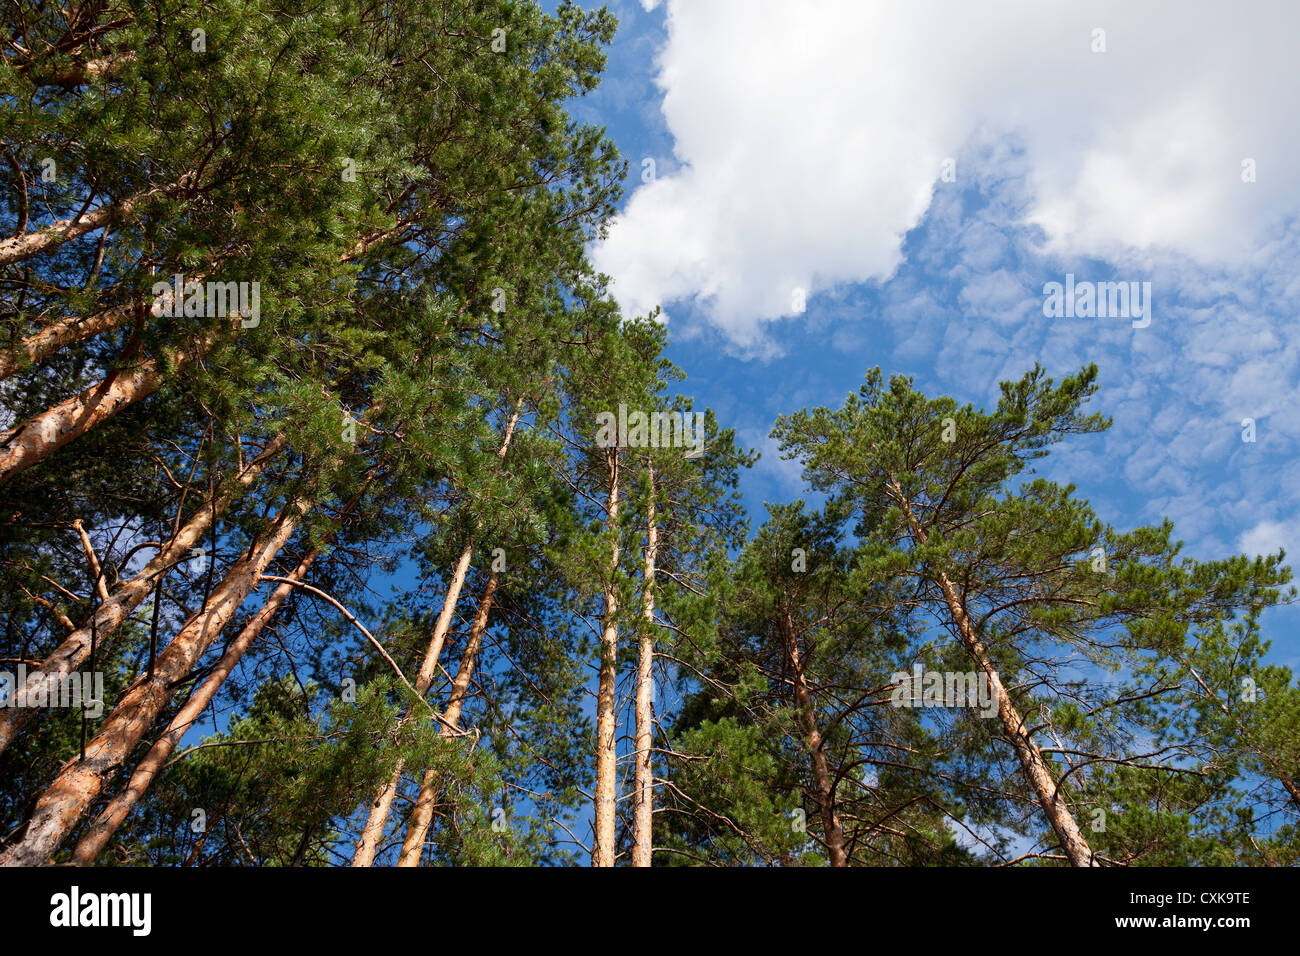 Tall pine trees in the forest against blue sky. Stock Photo